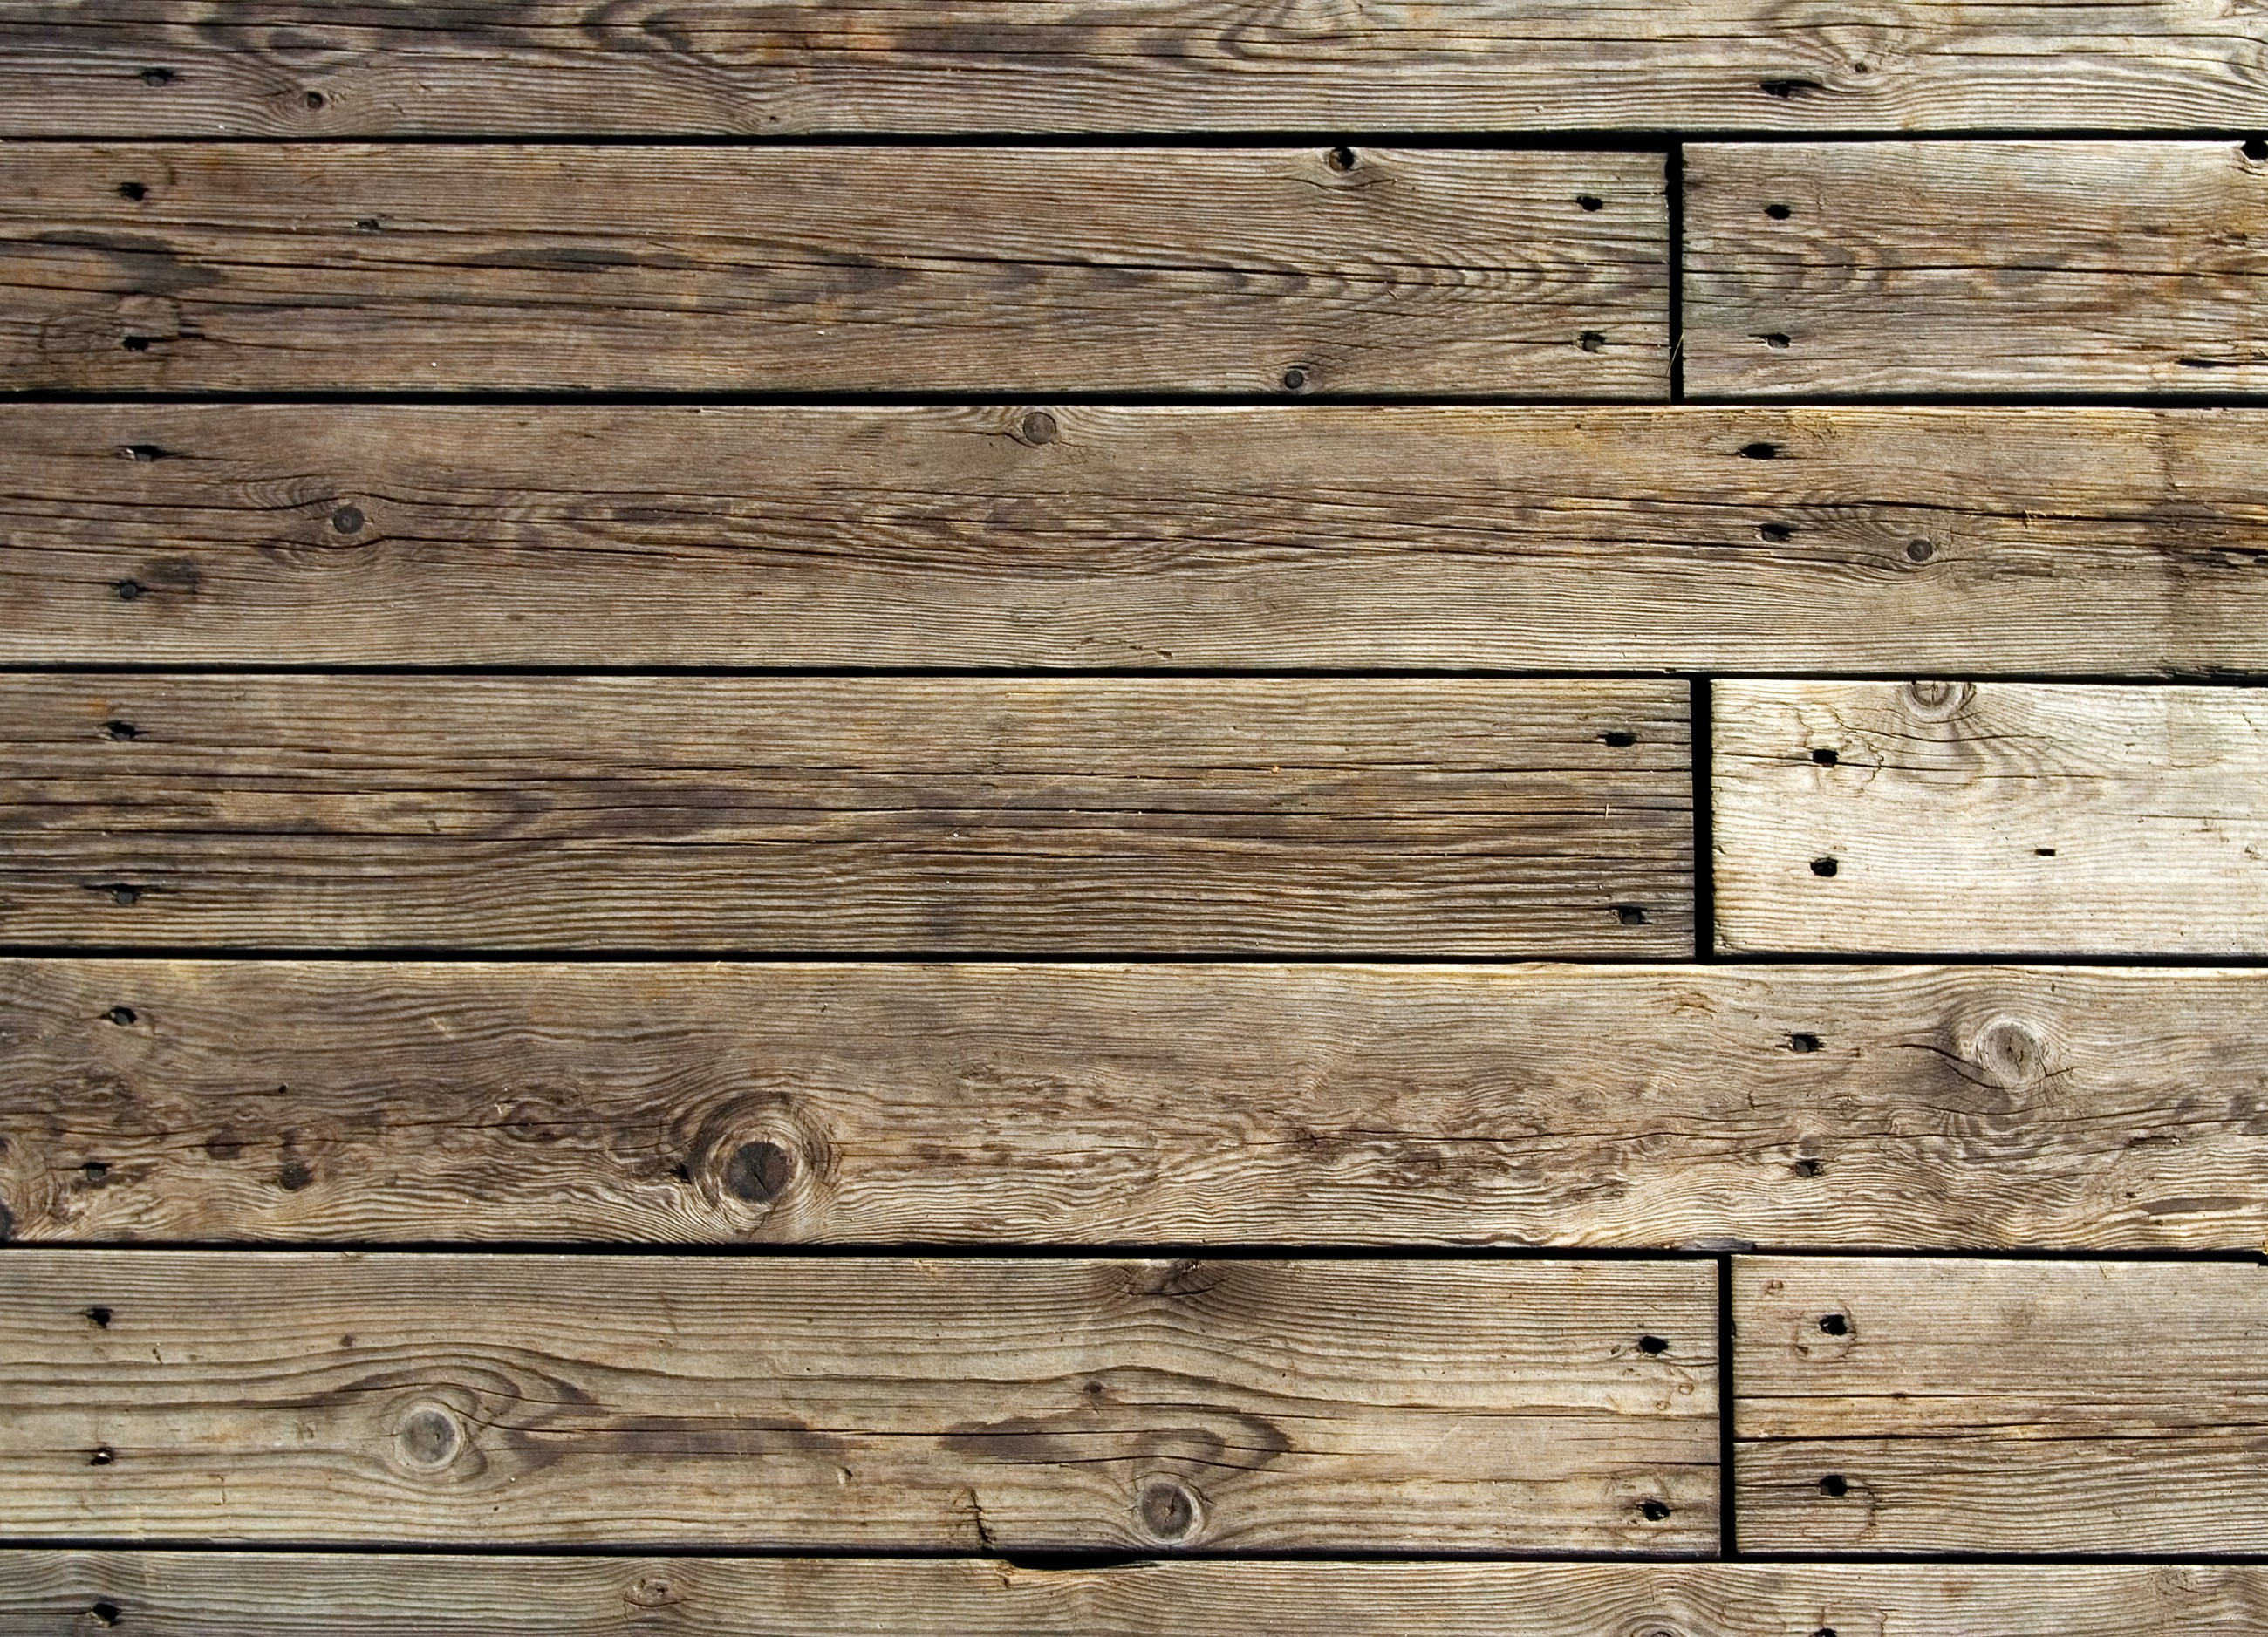 Barn Wood Background ~ Rustic barn wood background ·① download free beautiful